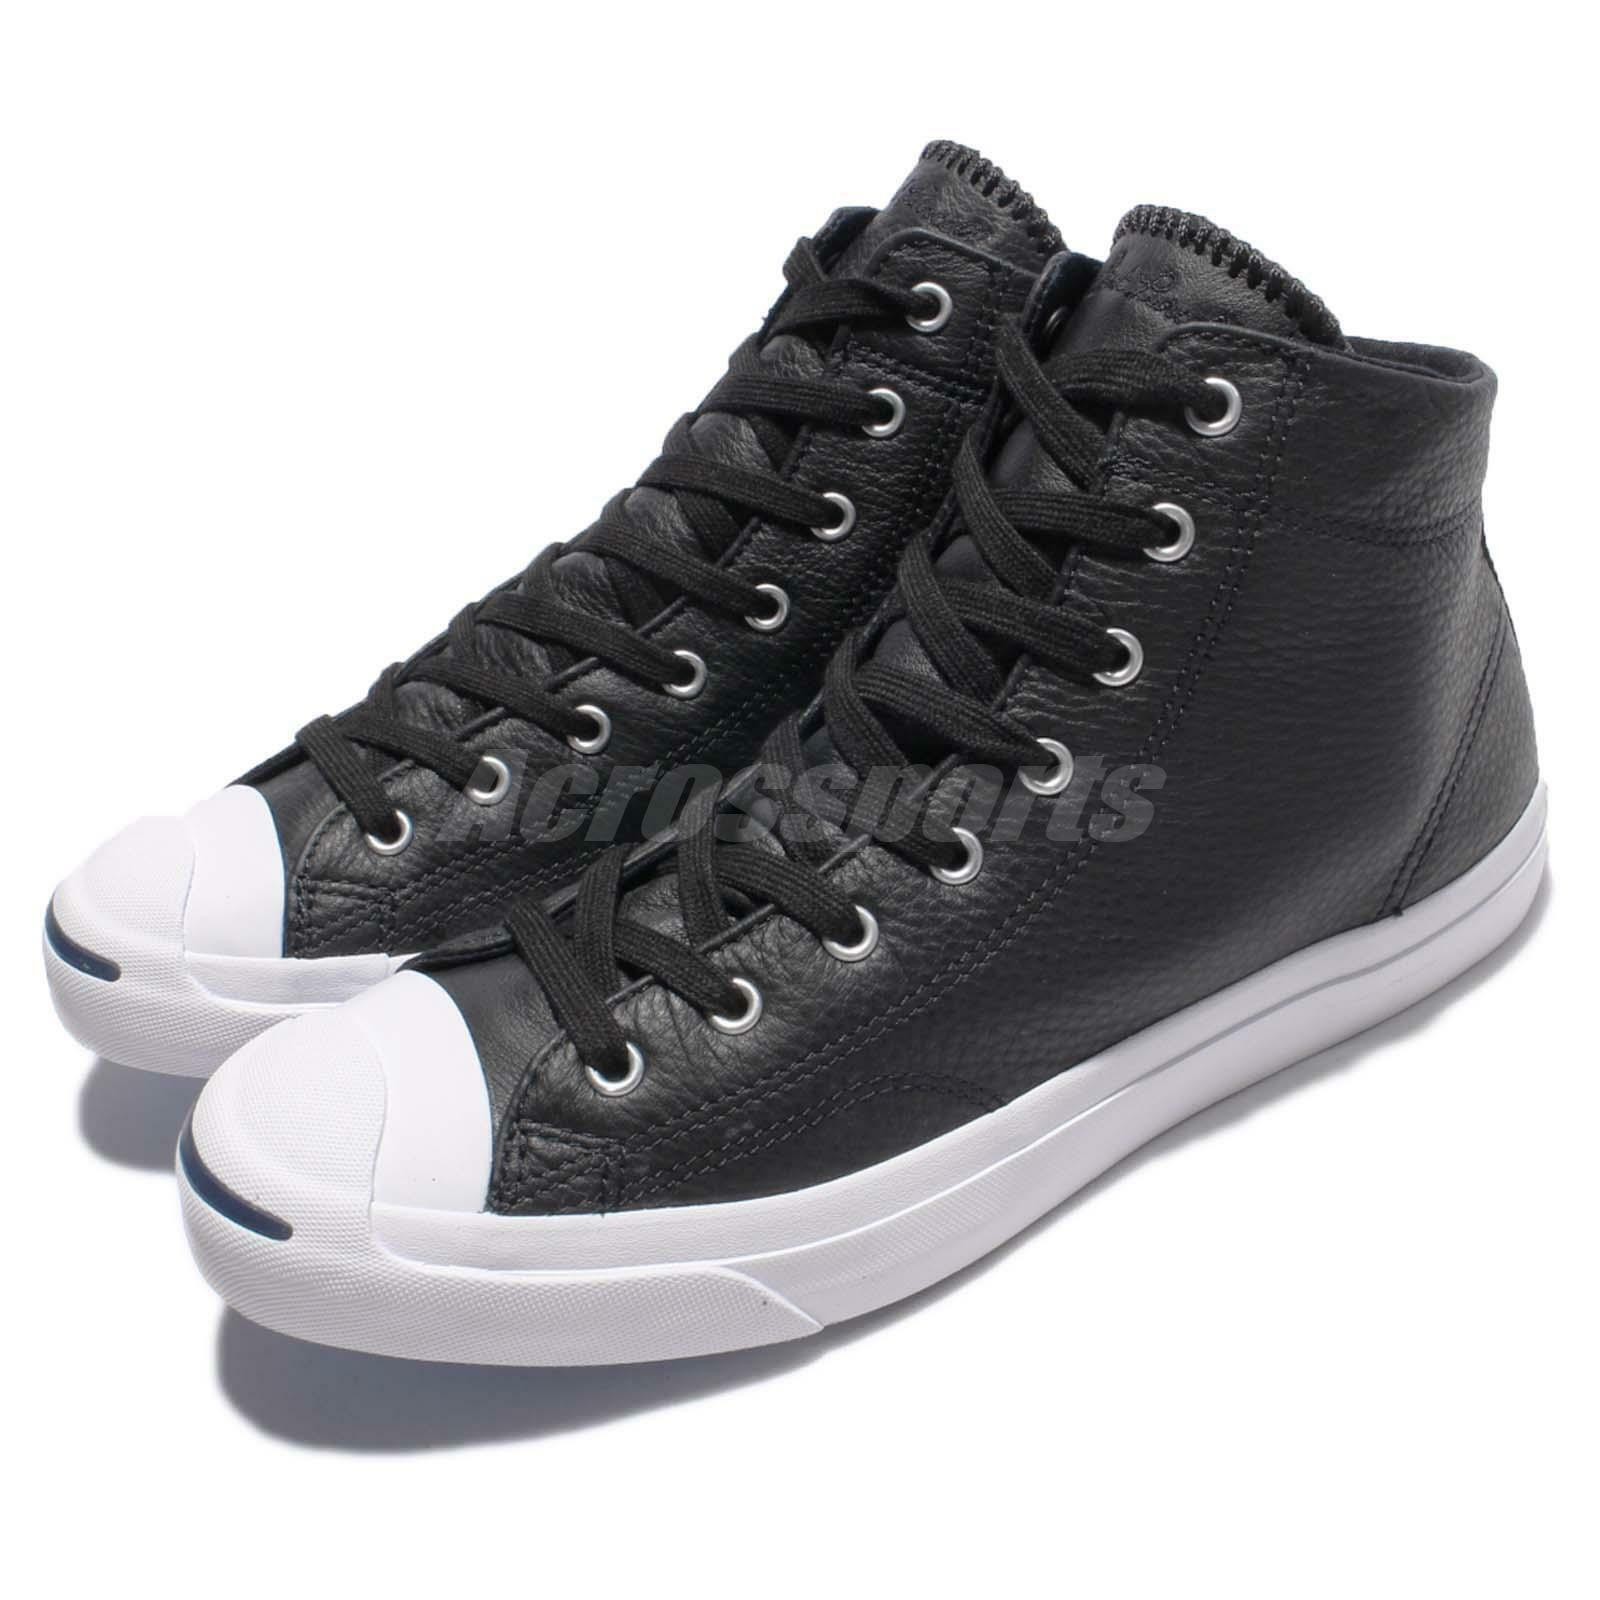 Converse Jack Purcell Jack Mid Black White Leather Men Casual Shoes 155718C